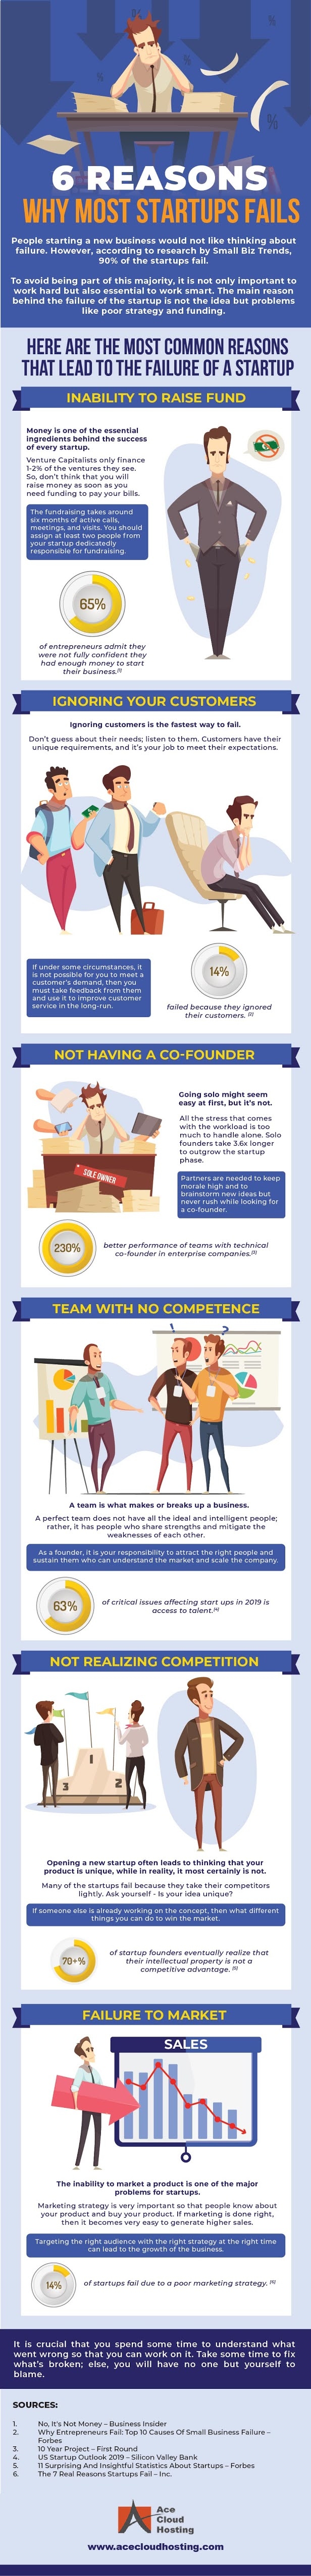 6 Reasons Why Most Startups Fail #infographic